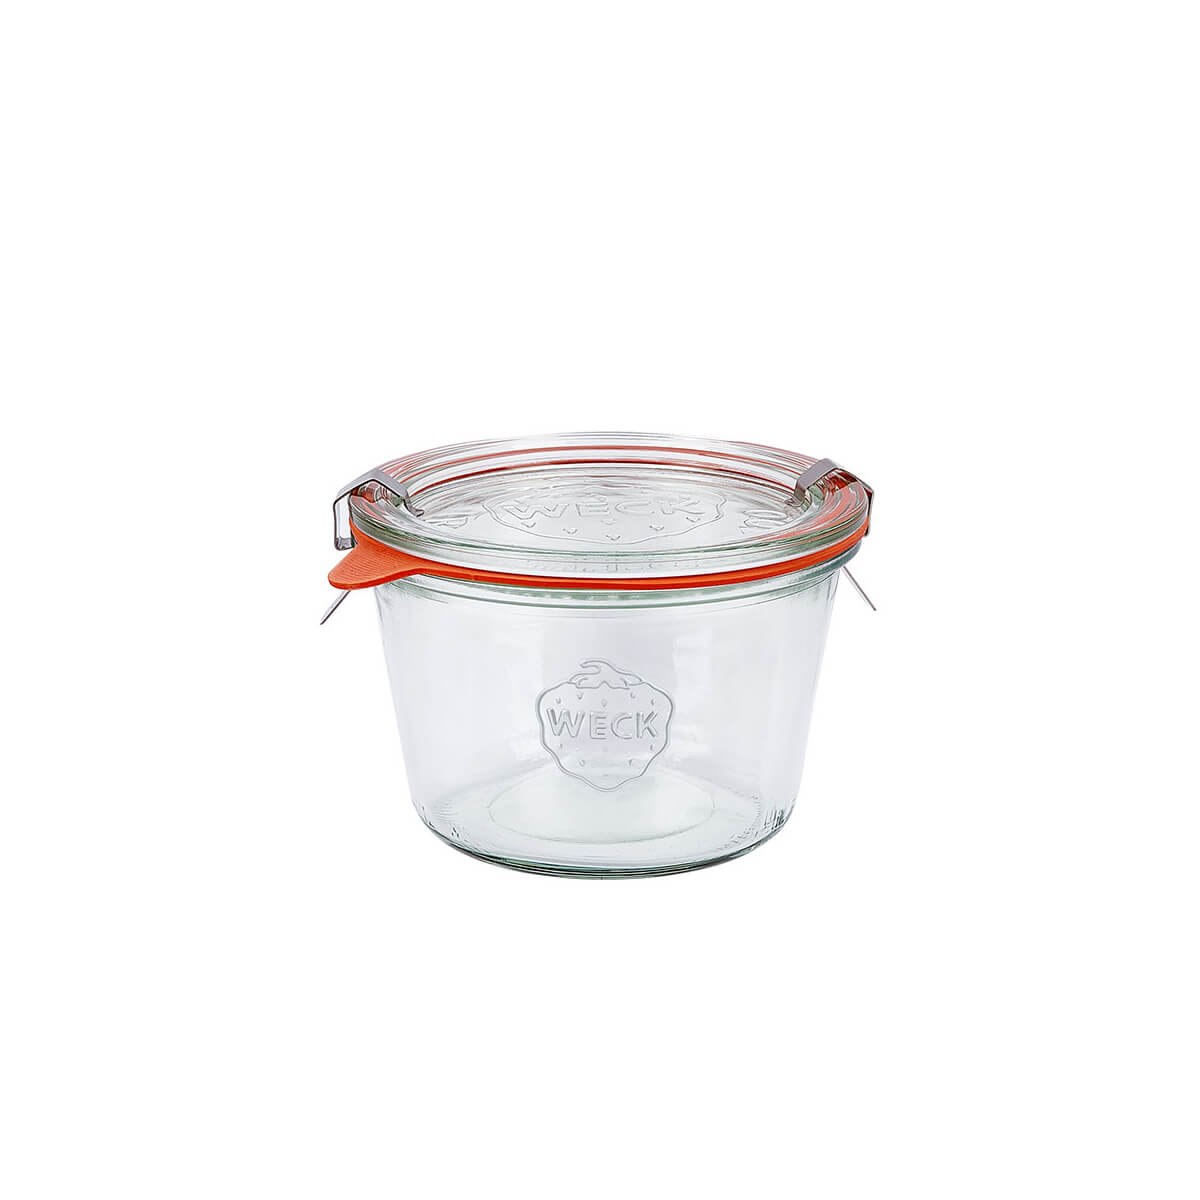 Weck 370ml canning jar Sturz